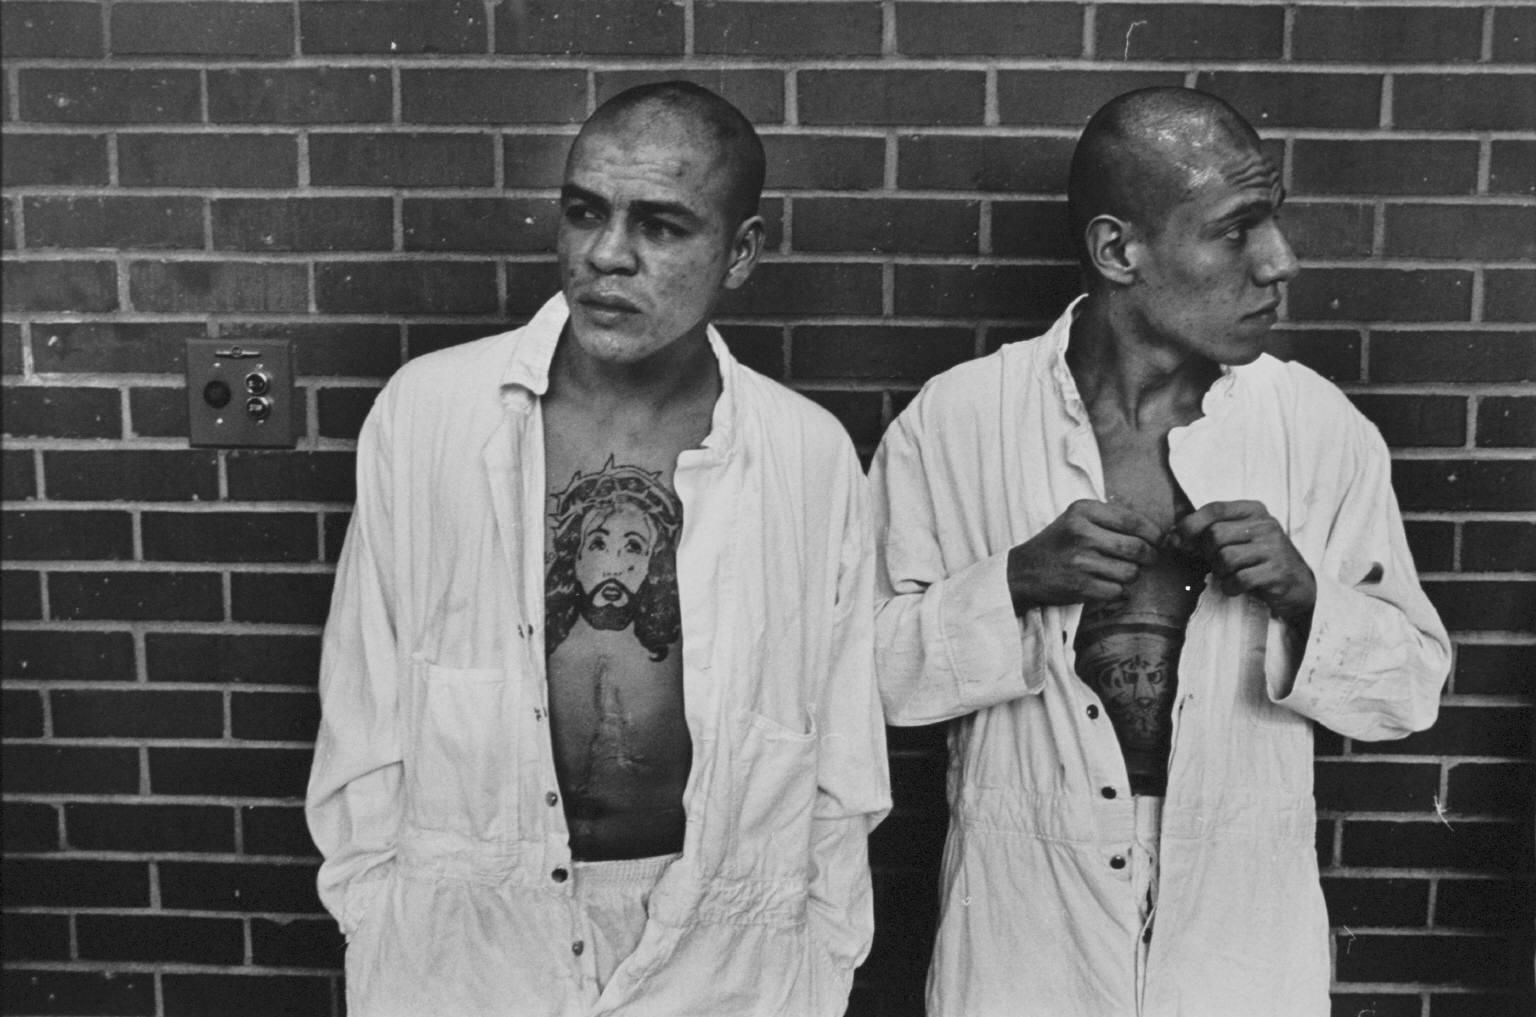 """""""New arrivals from Corpus Christi"""" from Conversations with the Dead by Danny Lyon --circa 1967-68"""